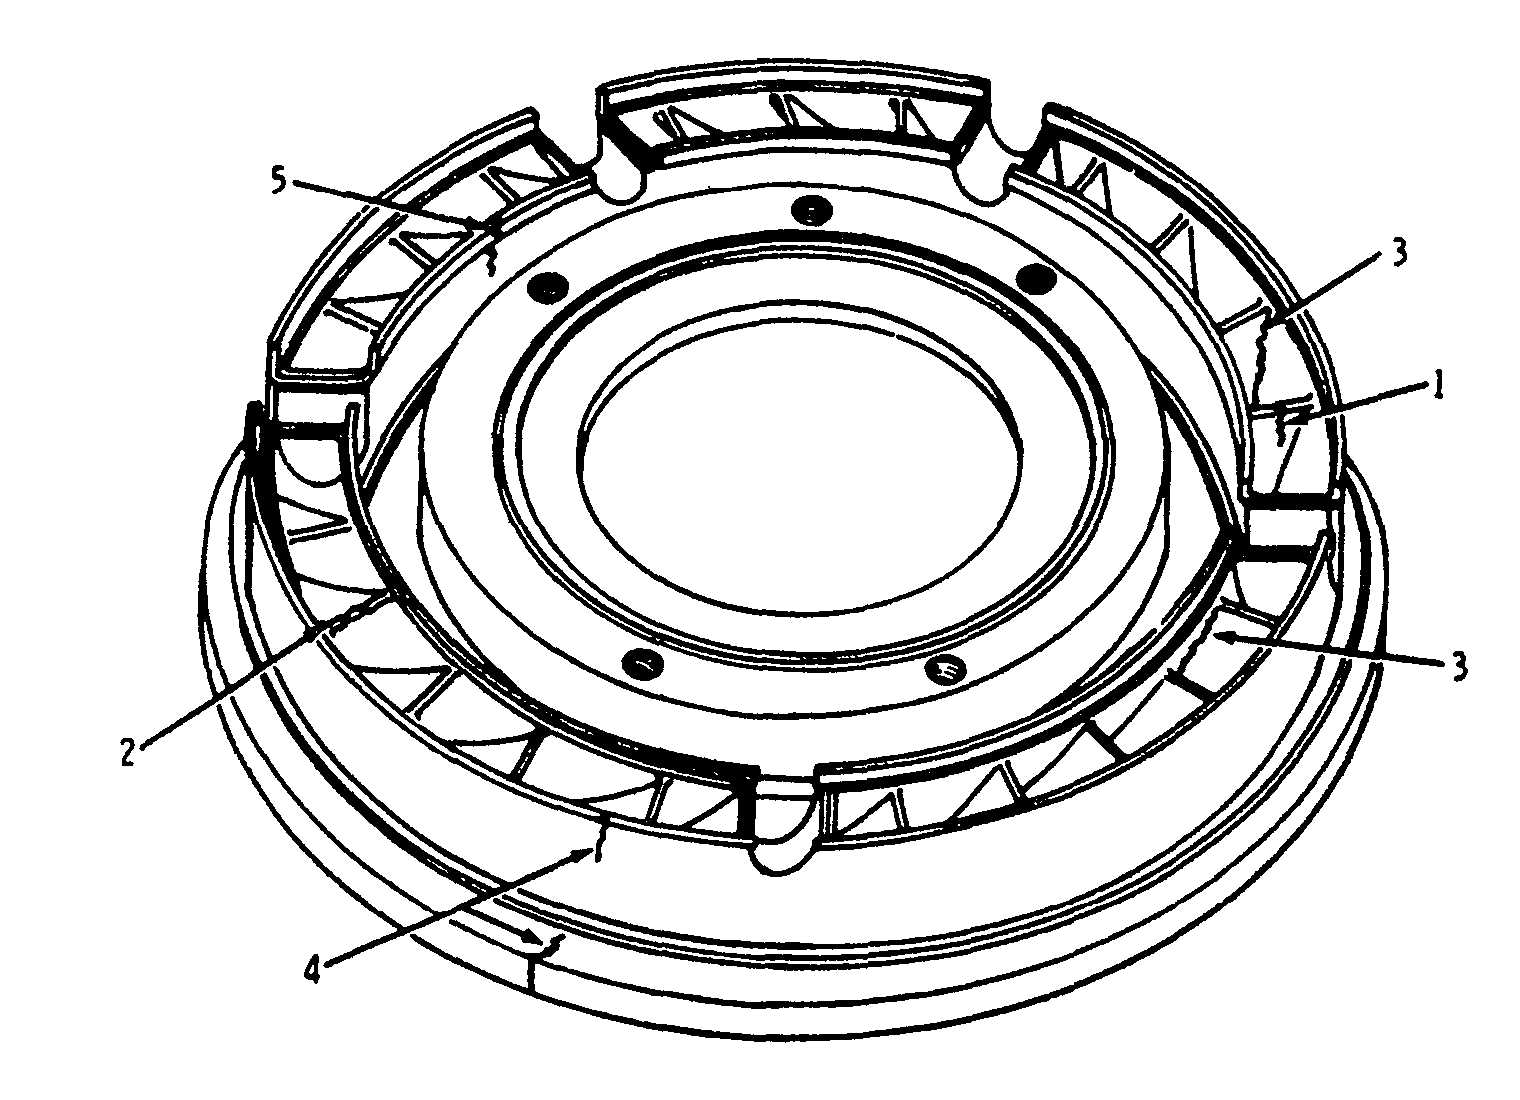 Table 12-3. First-Stage Turbine Nozzle and Shield Inspection